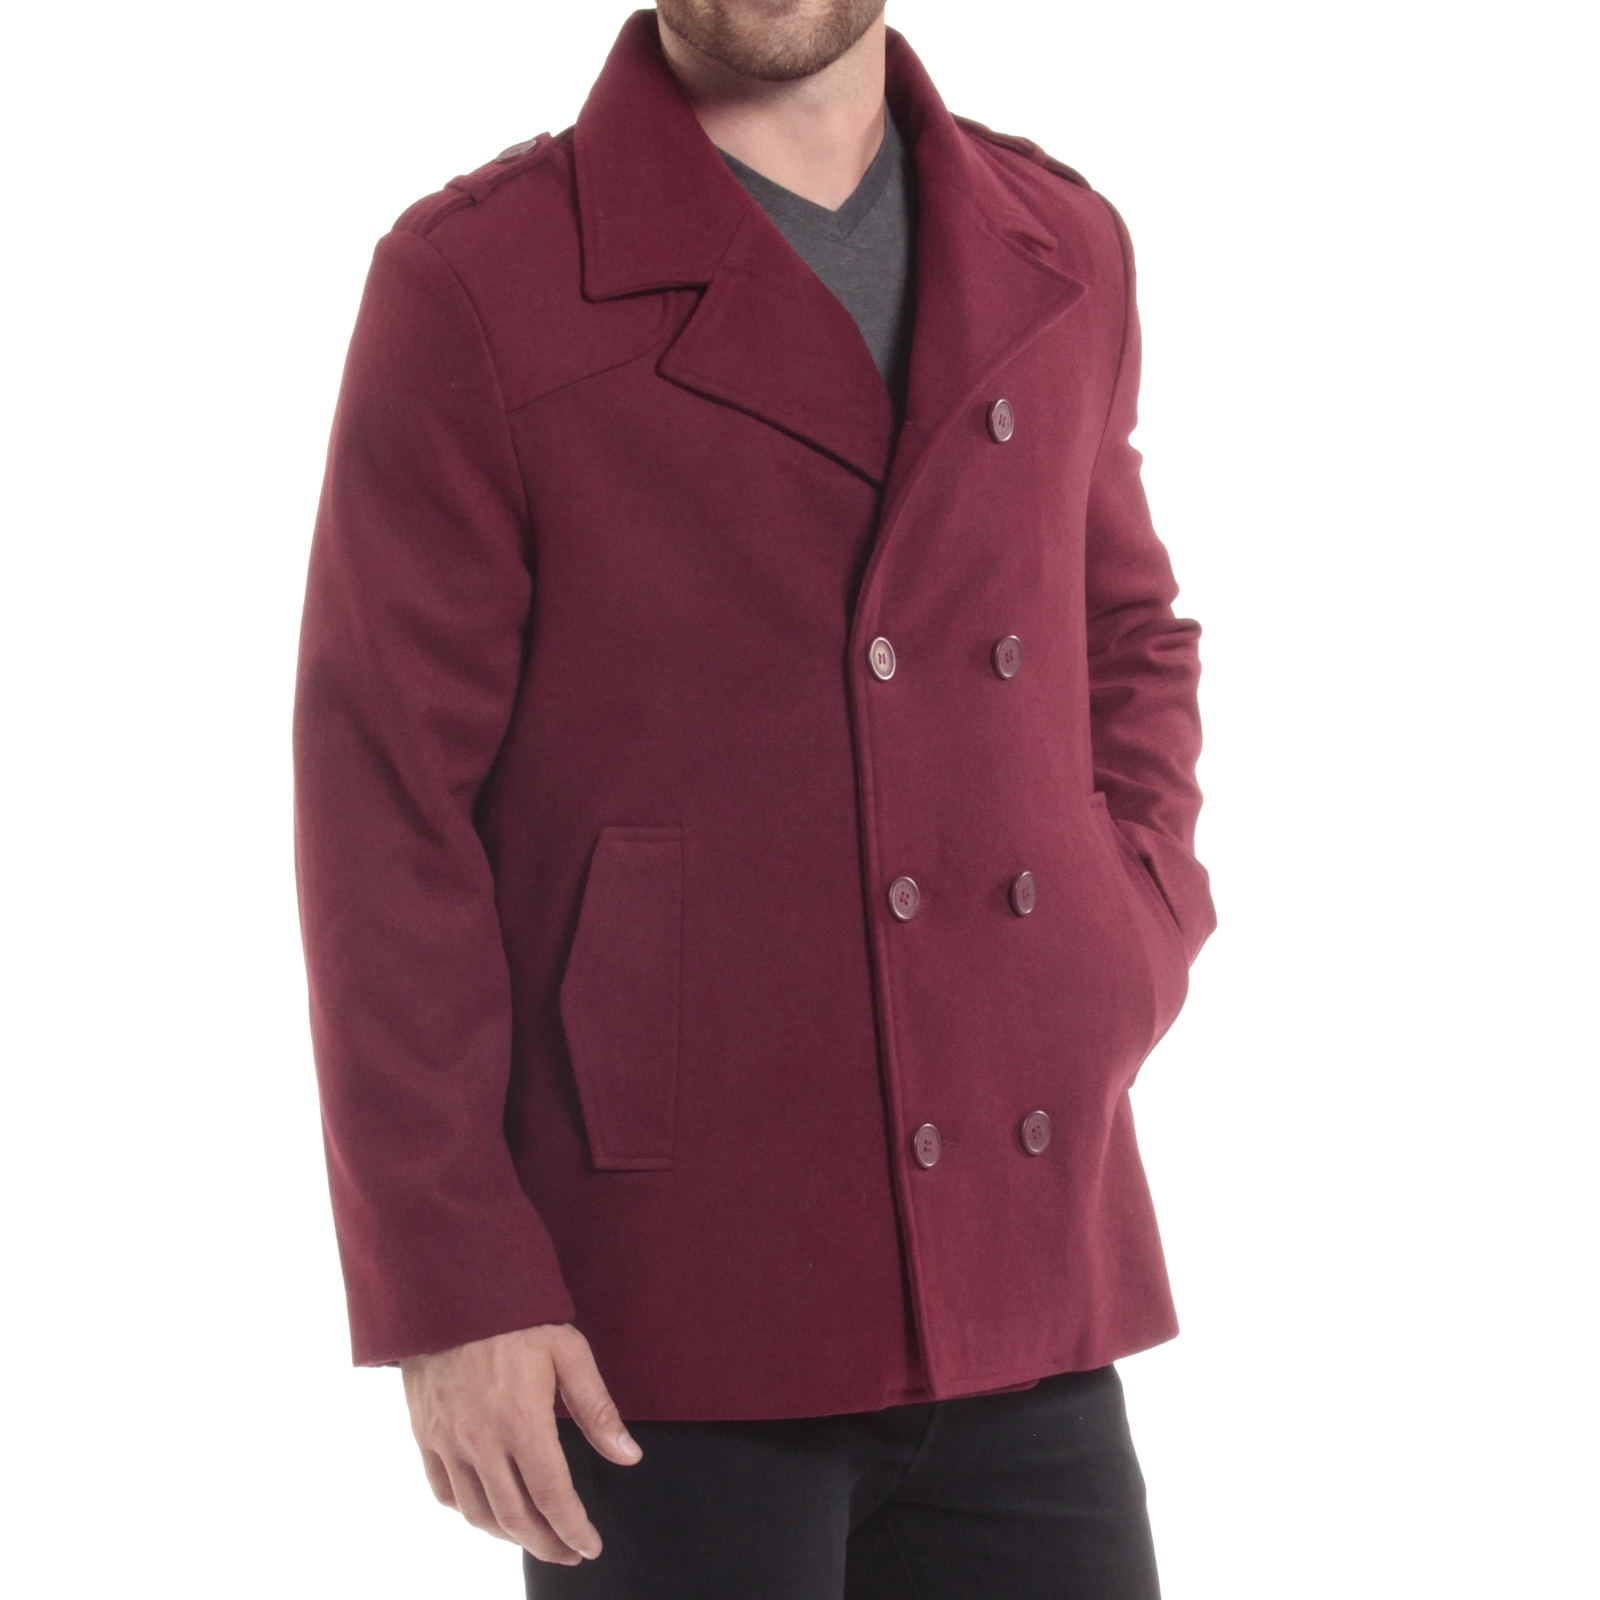 FREE Shipping & FREE Returns on Men's Designer Pea Coats, Top Coats & Overcoats. Shop now! Pick Up in Store Available.